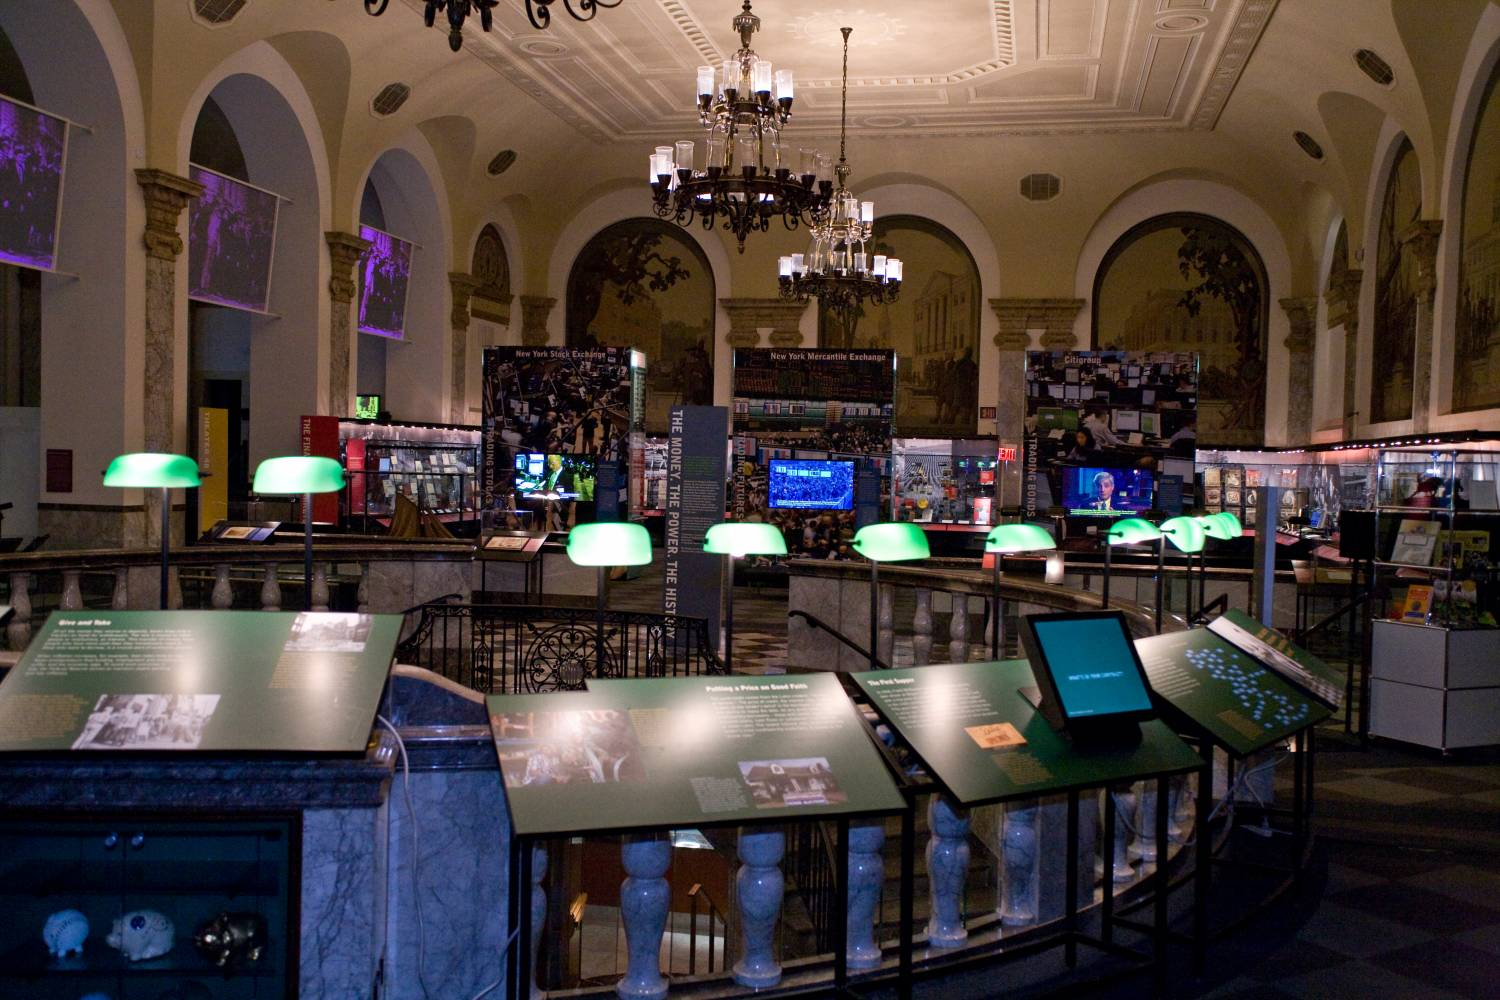 Museum of American Finance, interior